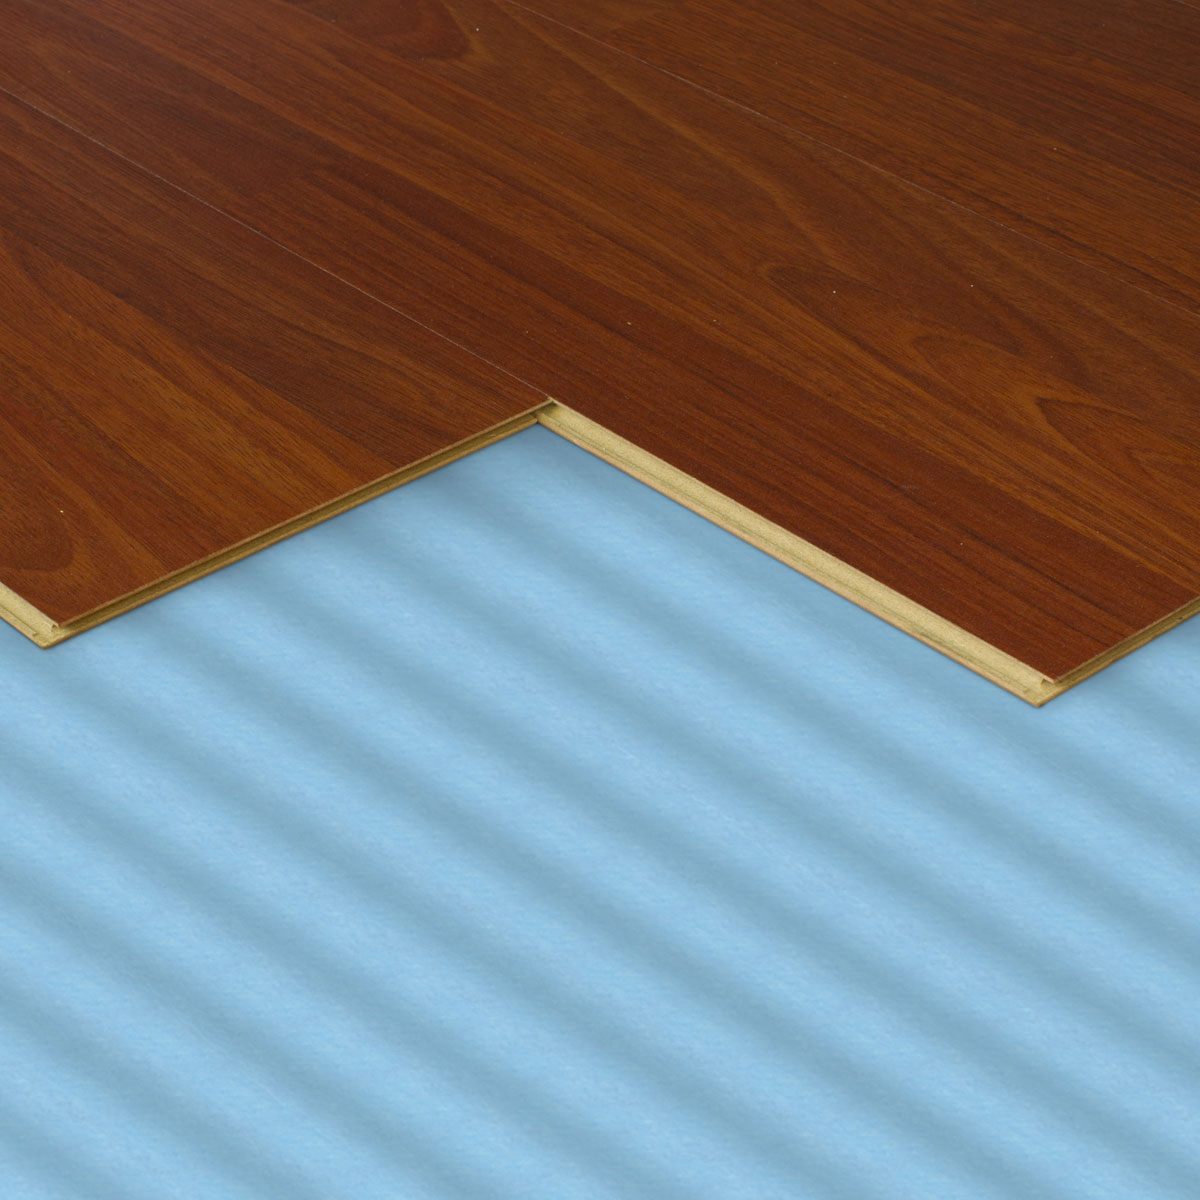 3 In 1 Underlayment Laminate Foam 3mm 200 Sq Ft Floor